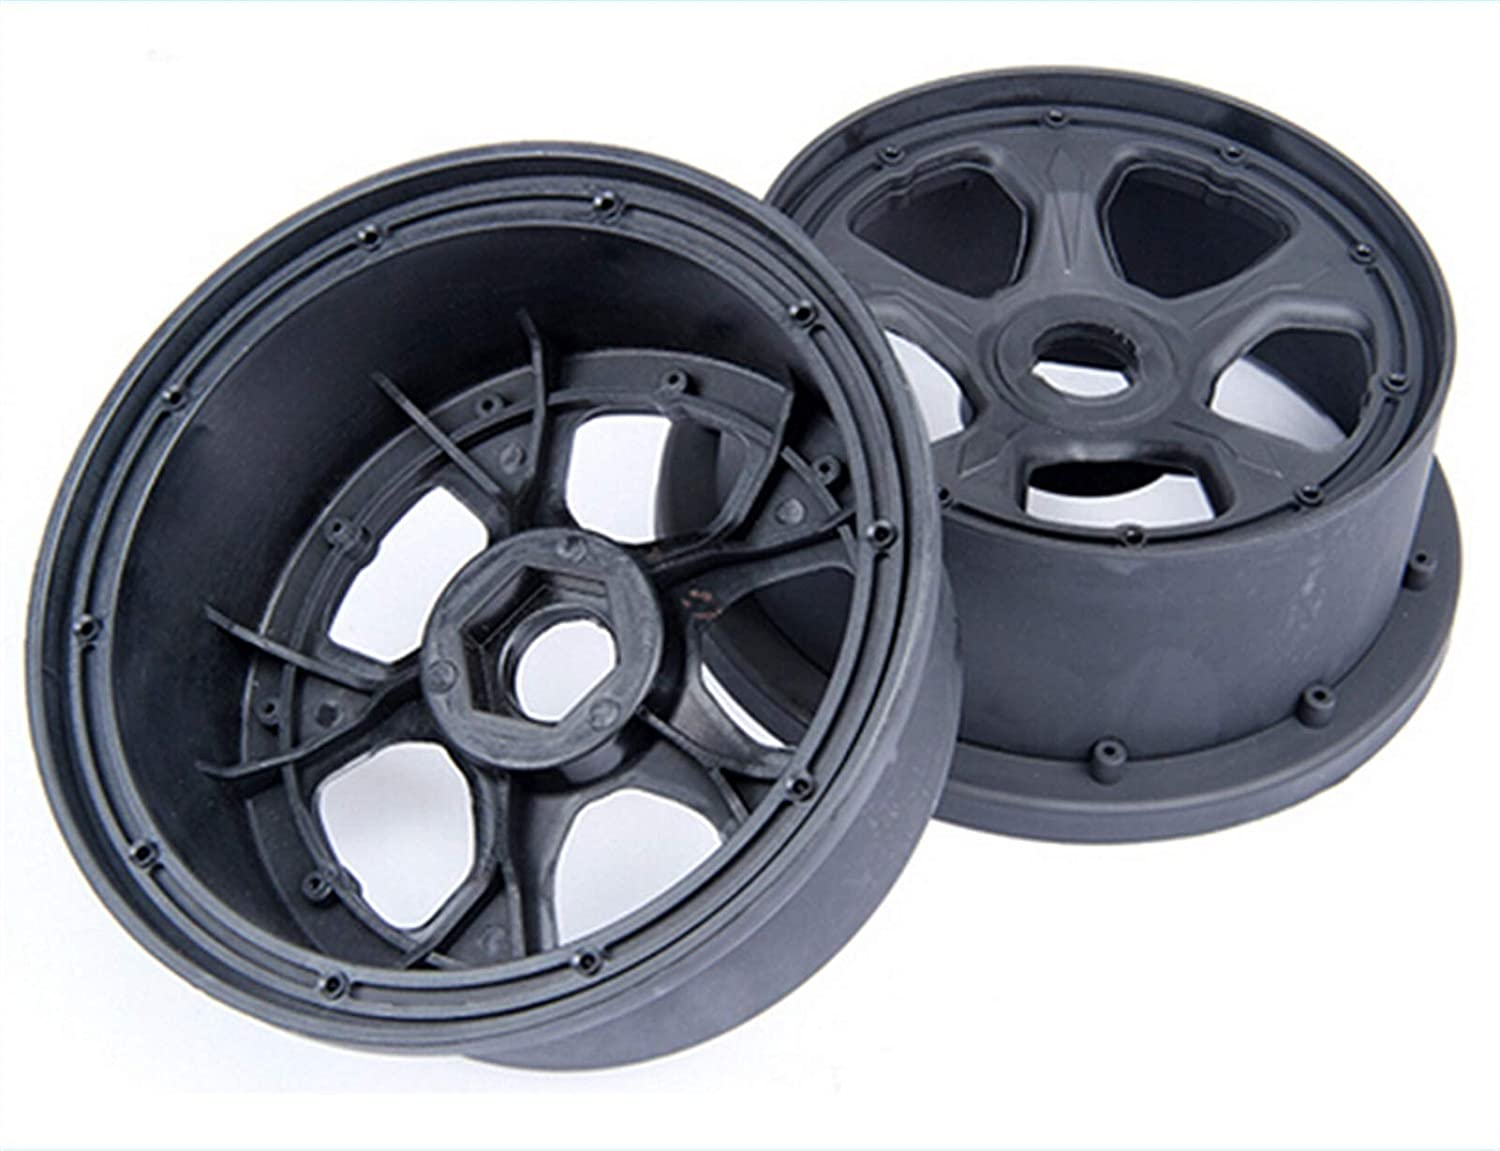 HUANRUOBAIHUO 1 Max 81% Outlet ☆ Free Shipping OFF 5 rc car Gas Wheel fit Set Racing Five-Spoke hub